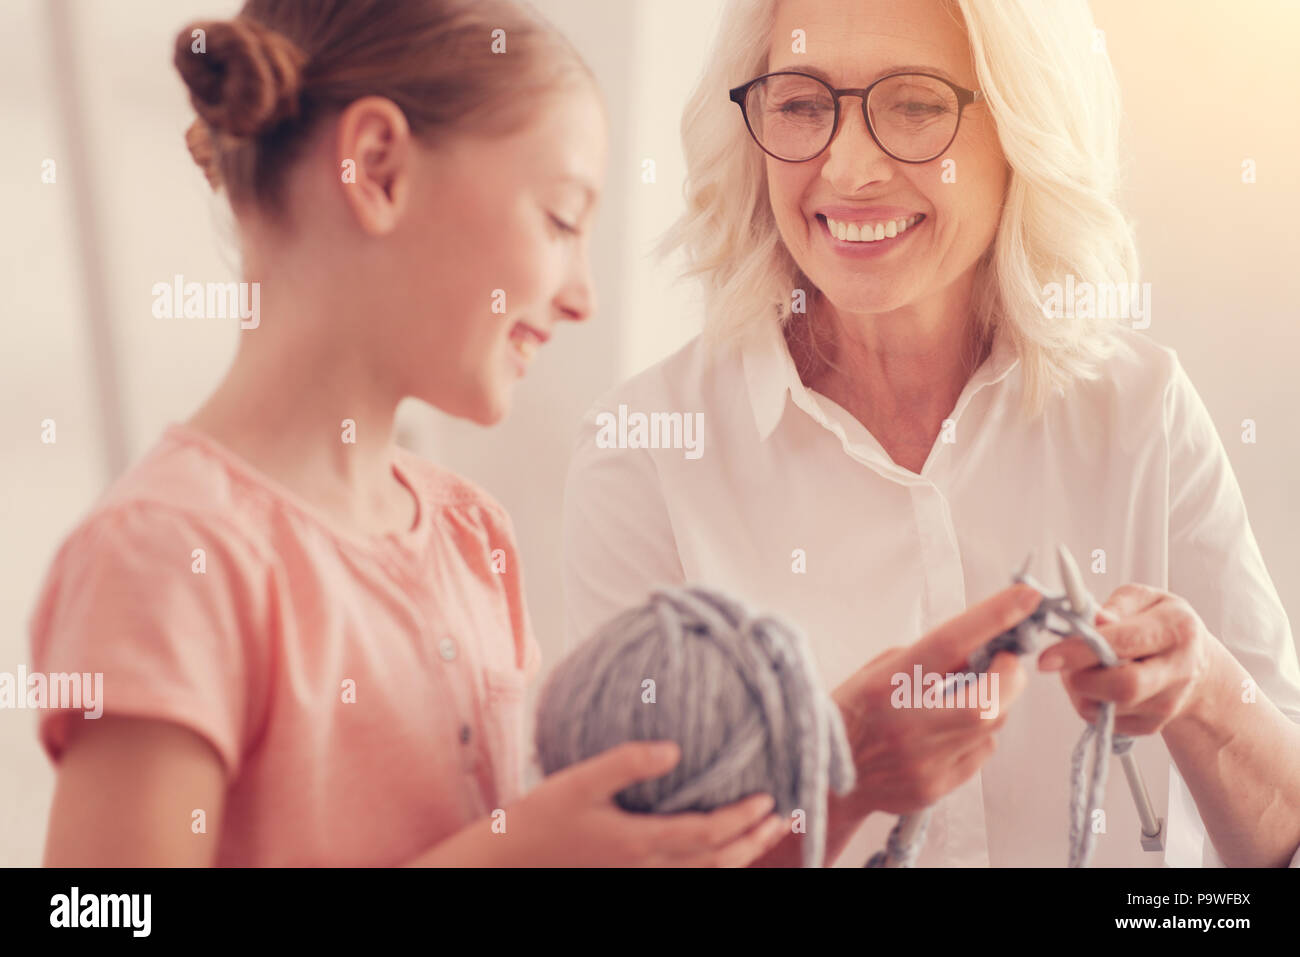 No time for worries. Selective focus on a happy grandmother grinning broadly while having a pleasant conversation with her loving granddaughter during - Stock Image